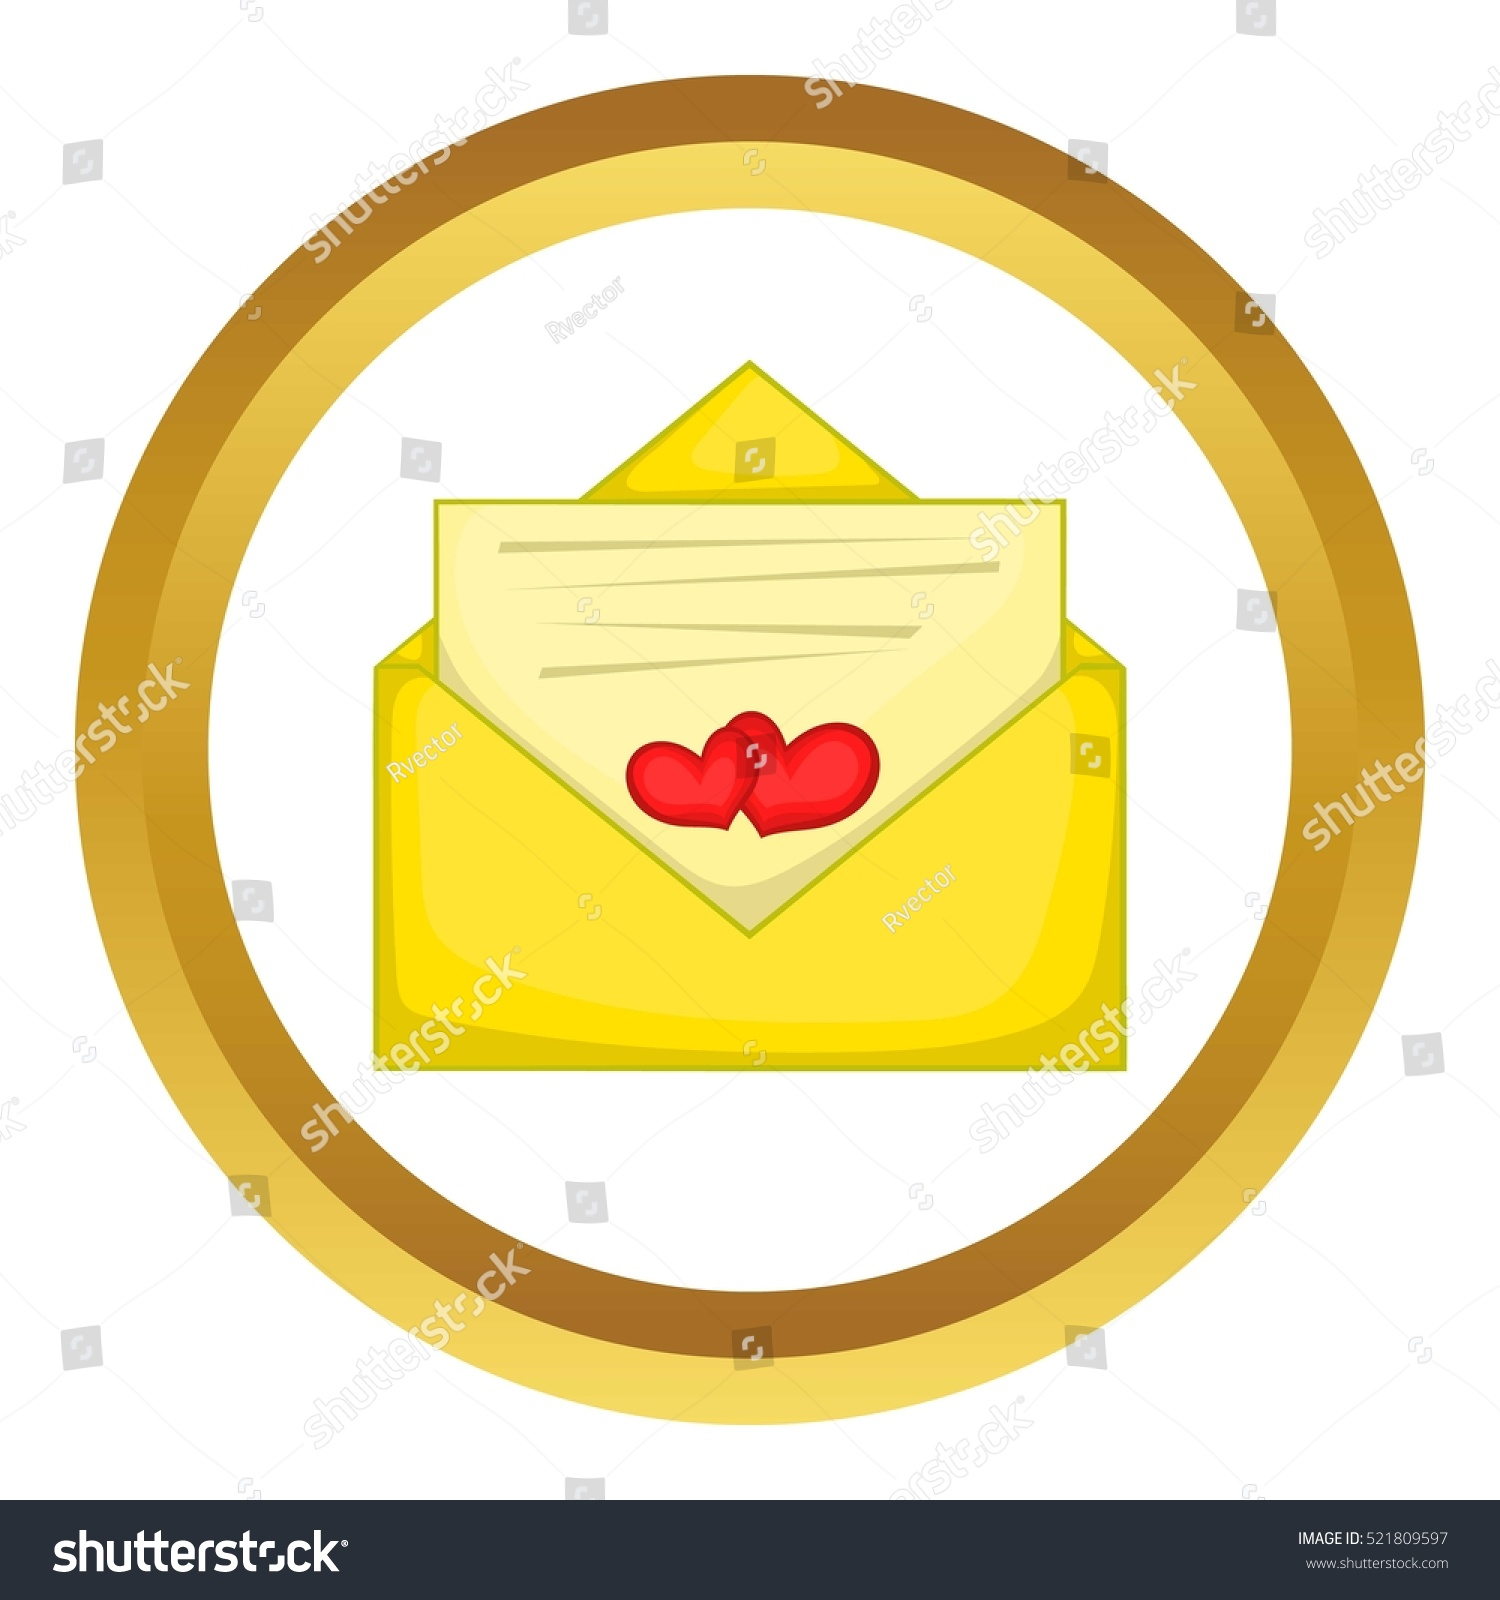 Love letter vector icon golden circle stock vector 521809597 love letter vector icon in golden circle cartoon style isolated on white background buycottarizona